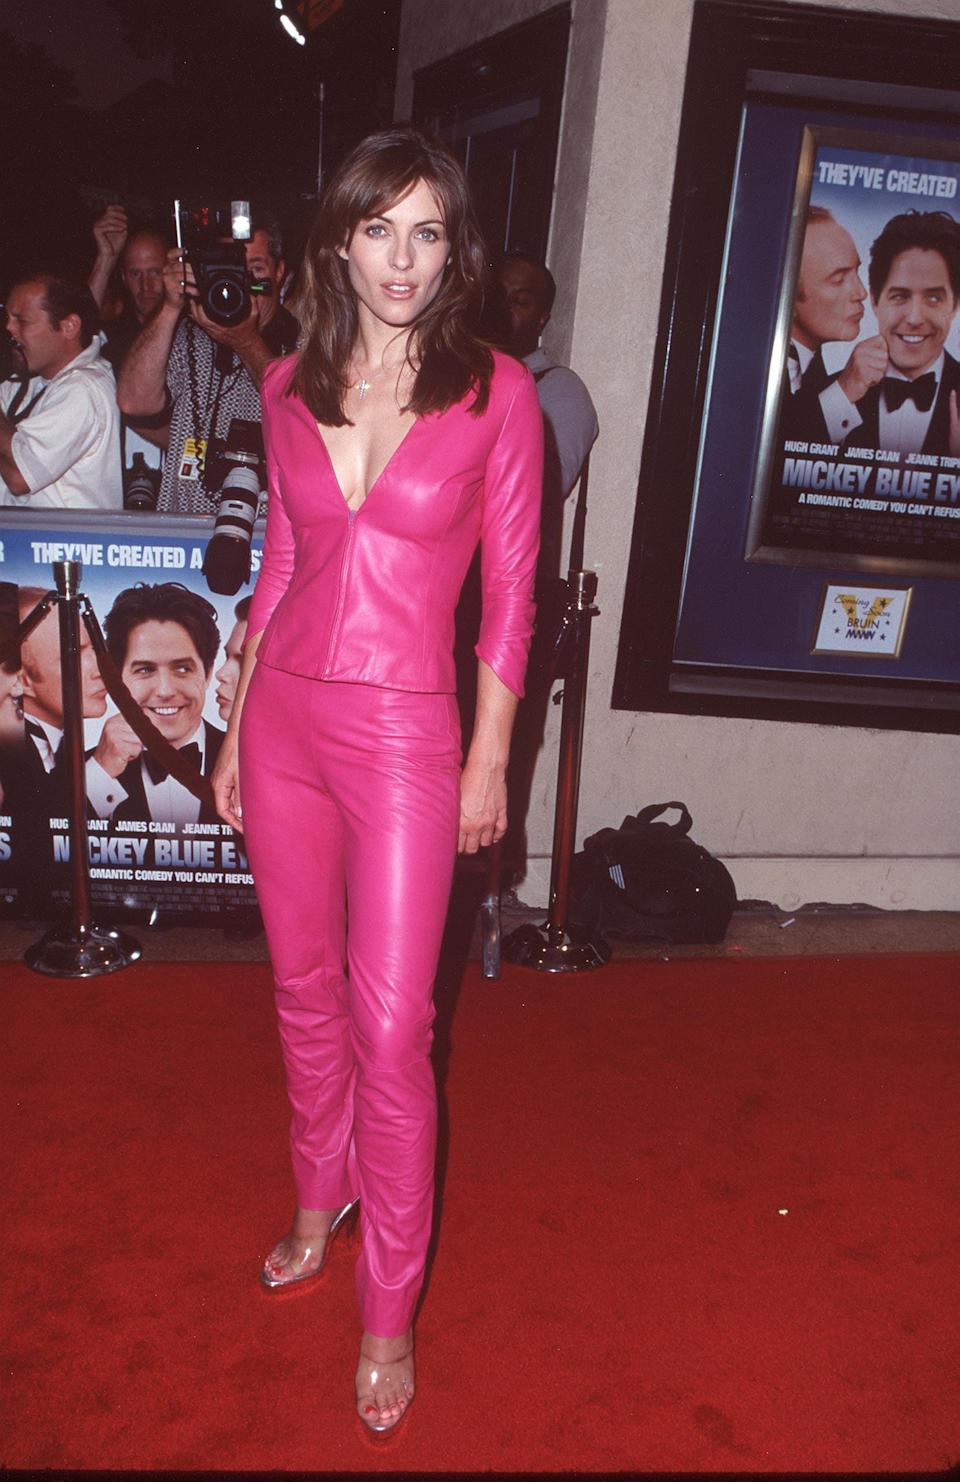 """<p>Actress and model <a class=""""link rapid-noclick-resp"""" href=""""https://www.popsugar.com/Elizabeth-Hurley"""" rel=""""nofollow noopener"""" target=""""_blank"""" data-ylk=""""slk:Elizabeth Hurley"""">Elizabeth Hurley</a> walked in this stunning pink leather outfit at the <strong>Mickey Blue Eyes </strong>premiere so that <a href=""""https://www.popsugar.com/fashion/reese-witherspoon-legally-blonde-style-47680011"""" class=""""link rapid-noclick-resp"""" rel=""""nofollow noopener"""" target=""""_blank"""" data-ylk=""""slk:Elle Woods"""">Elle Woods</a> could run in <strong>Legally Blonde</strong>. </p>"""